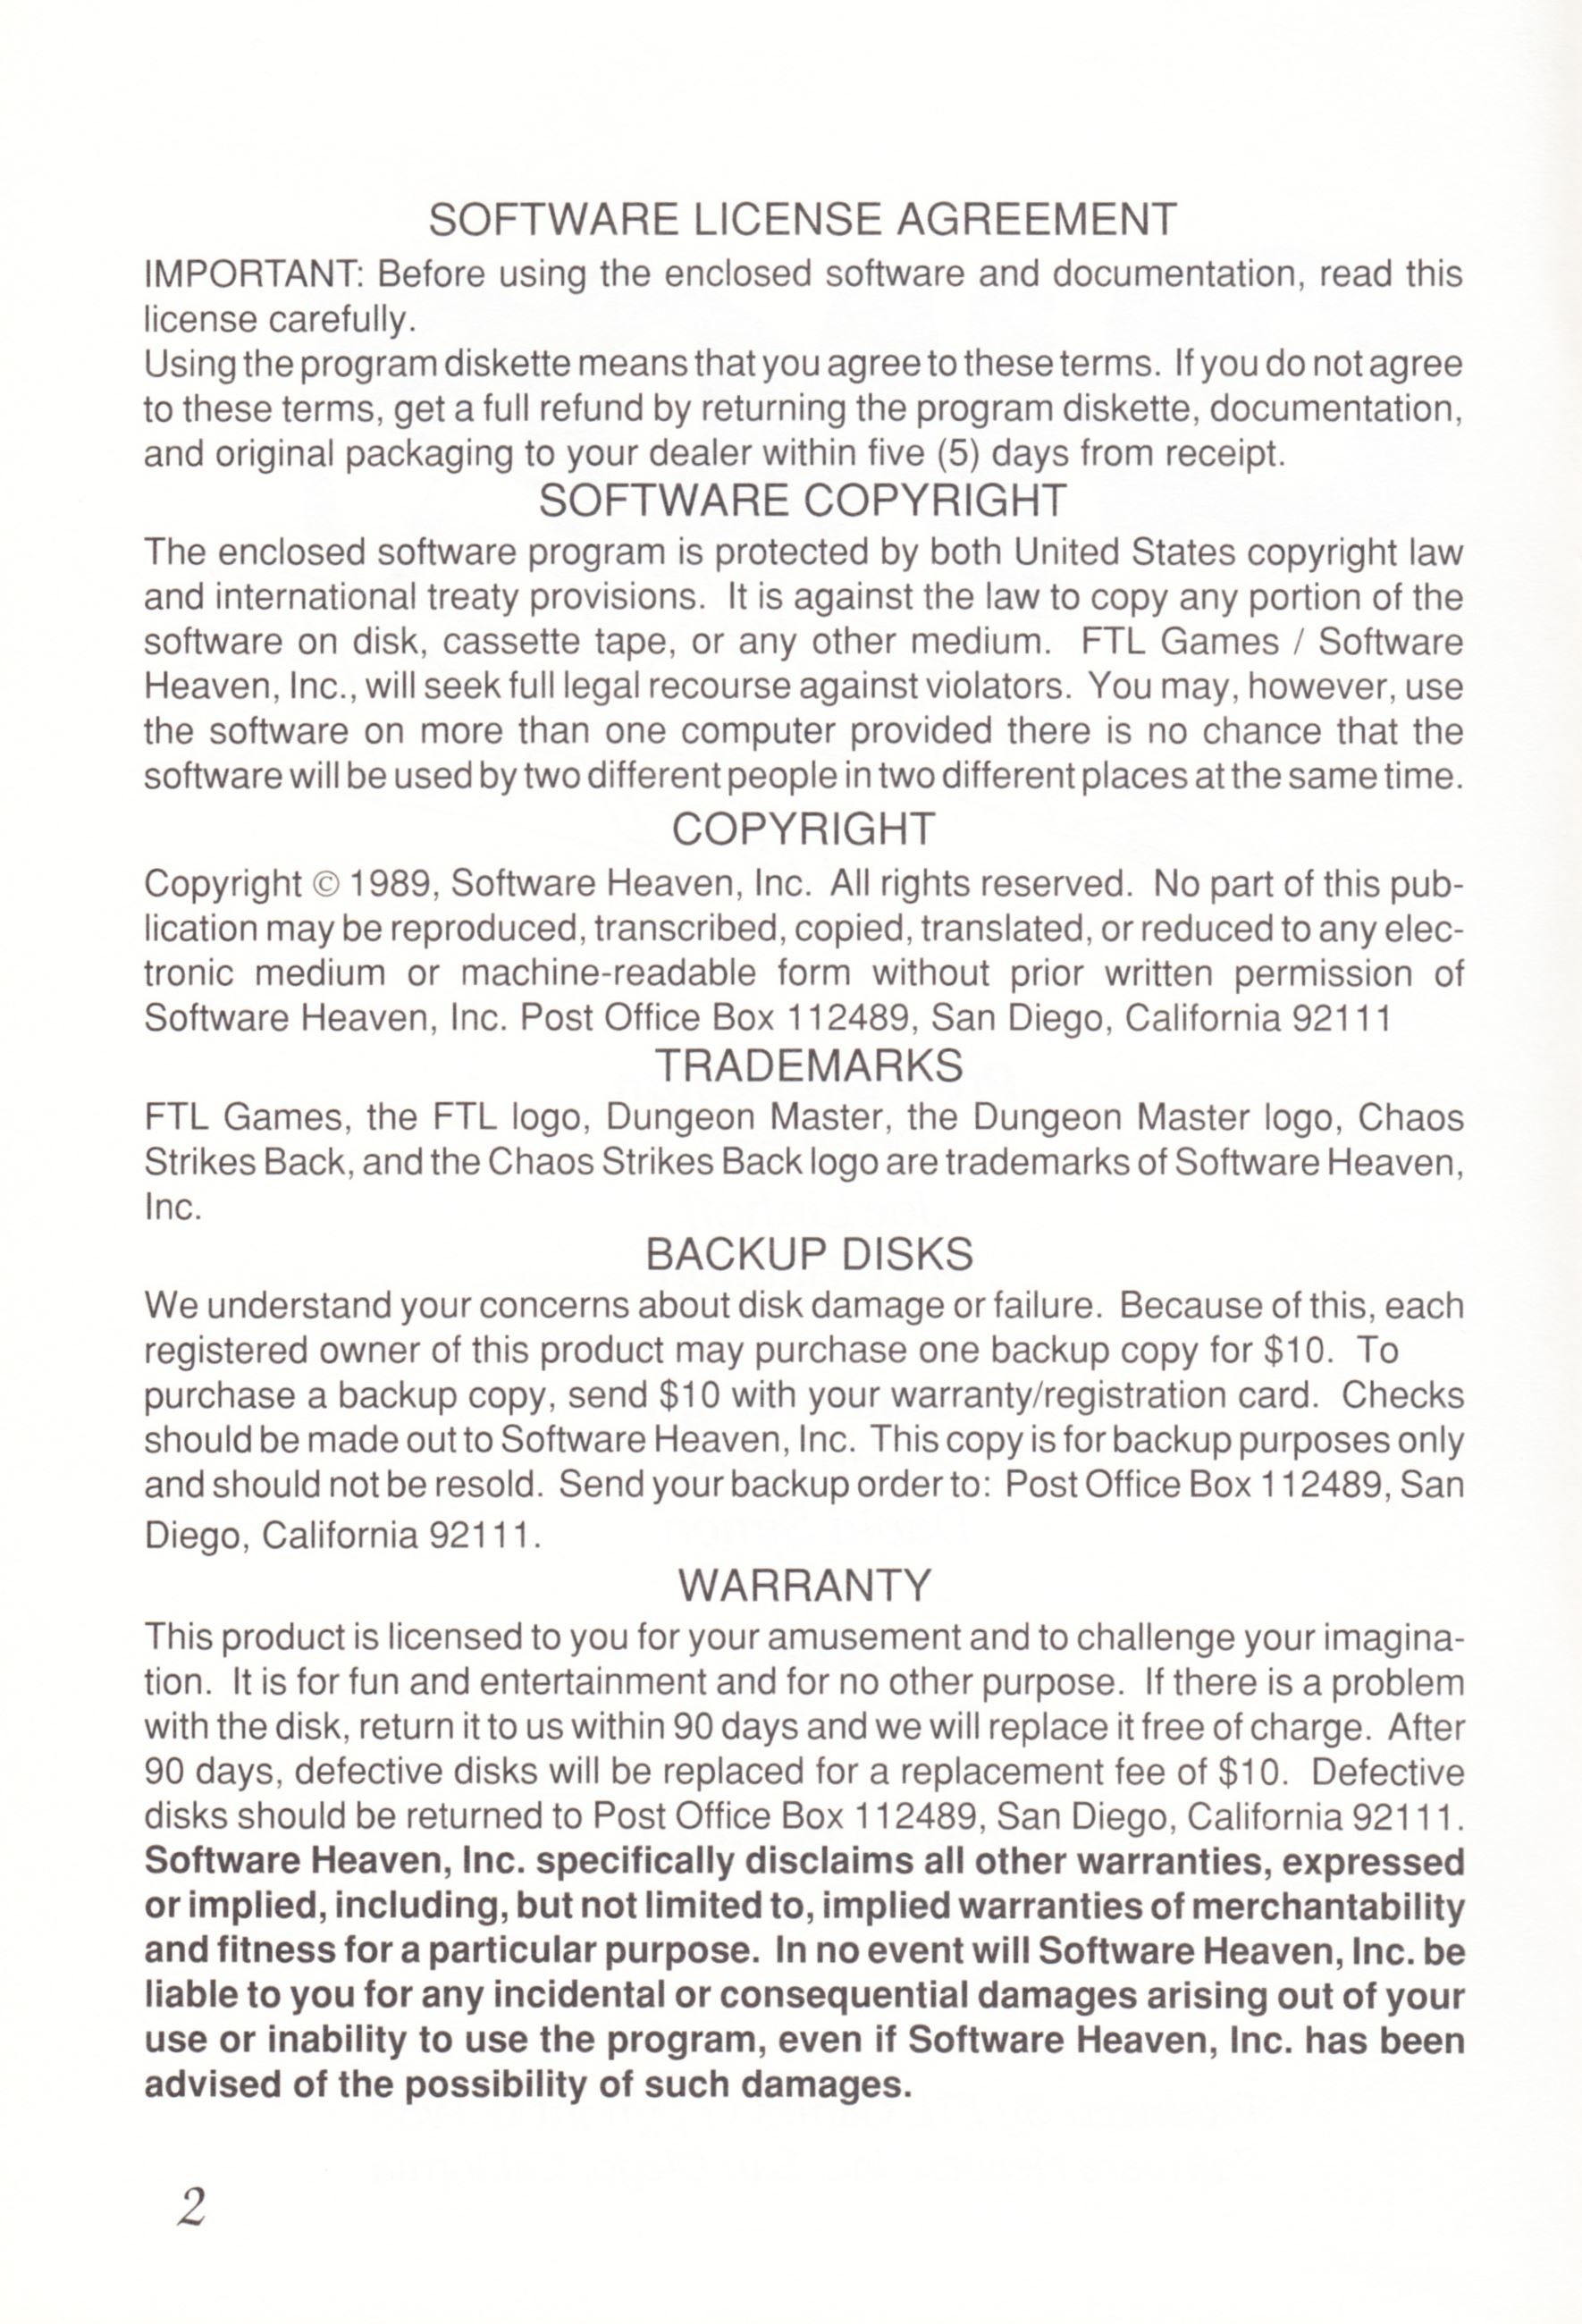 Game - Chaos Strikes Back - UK - Amiga - Manual - Page 004 - Scan